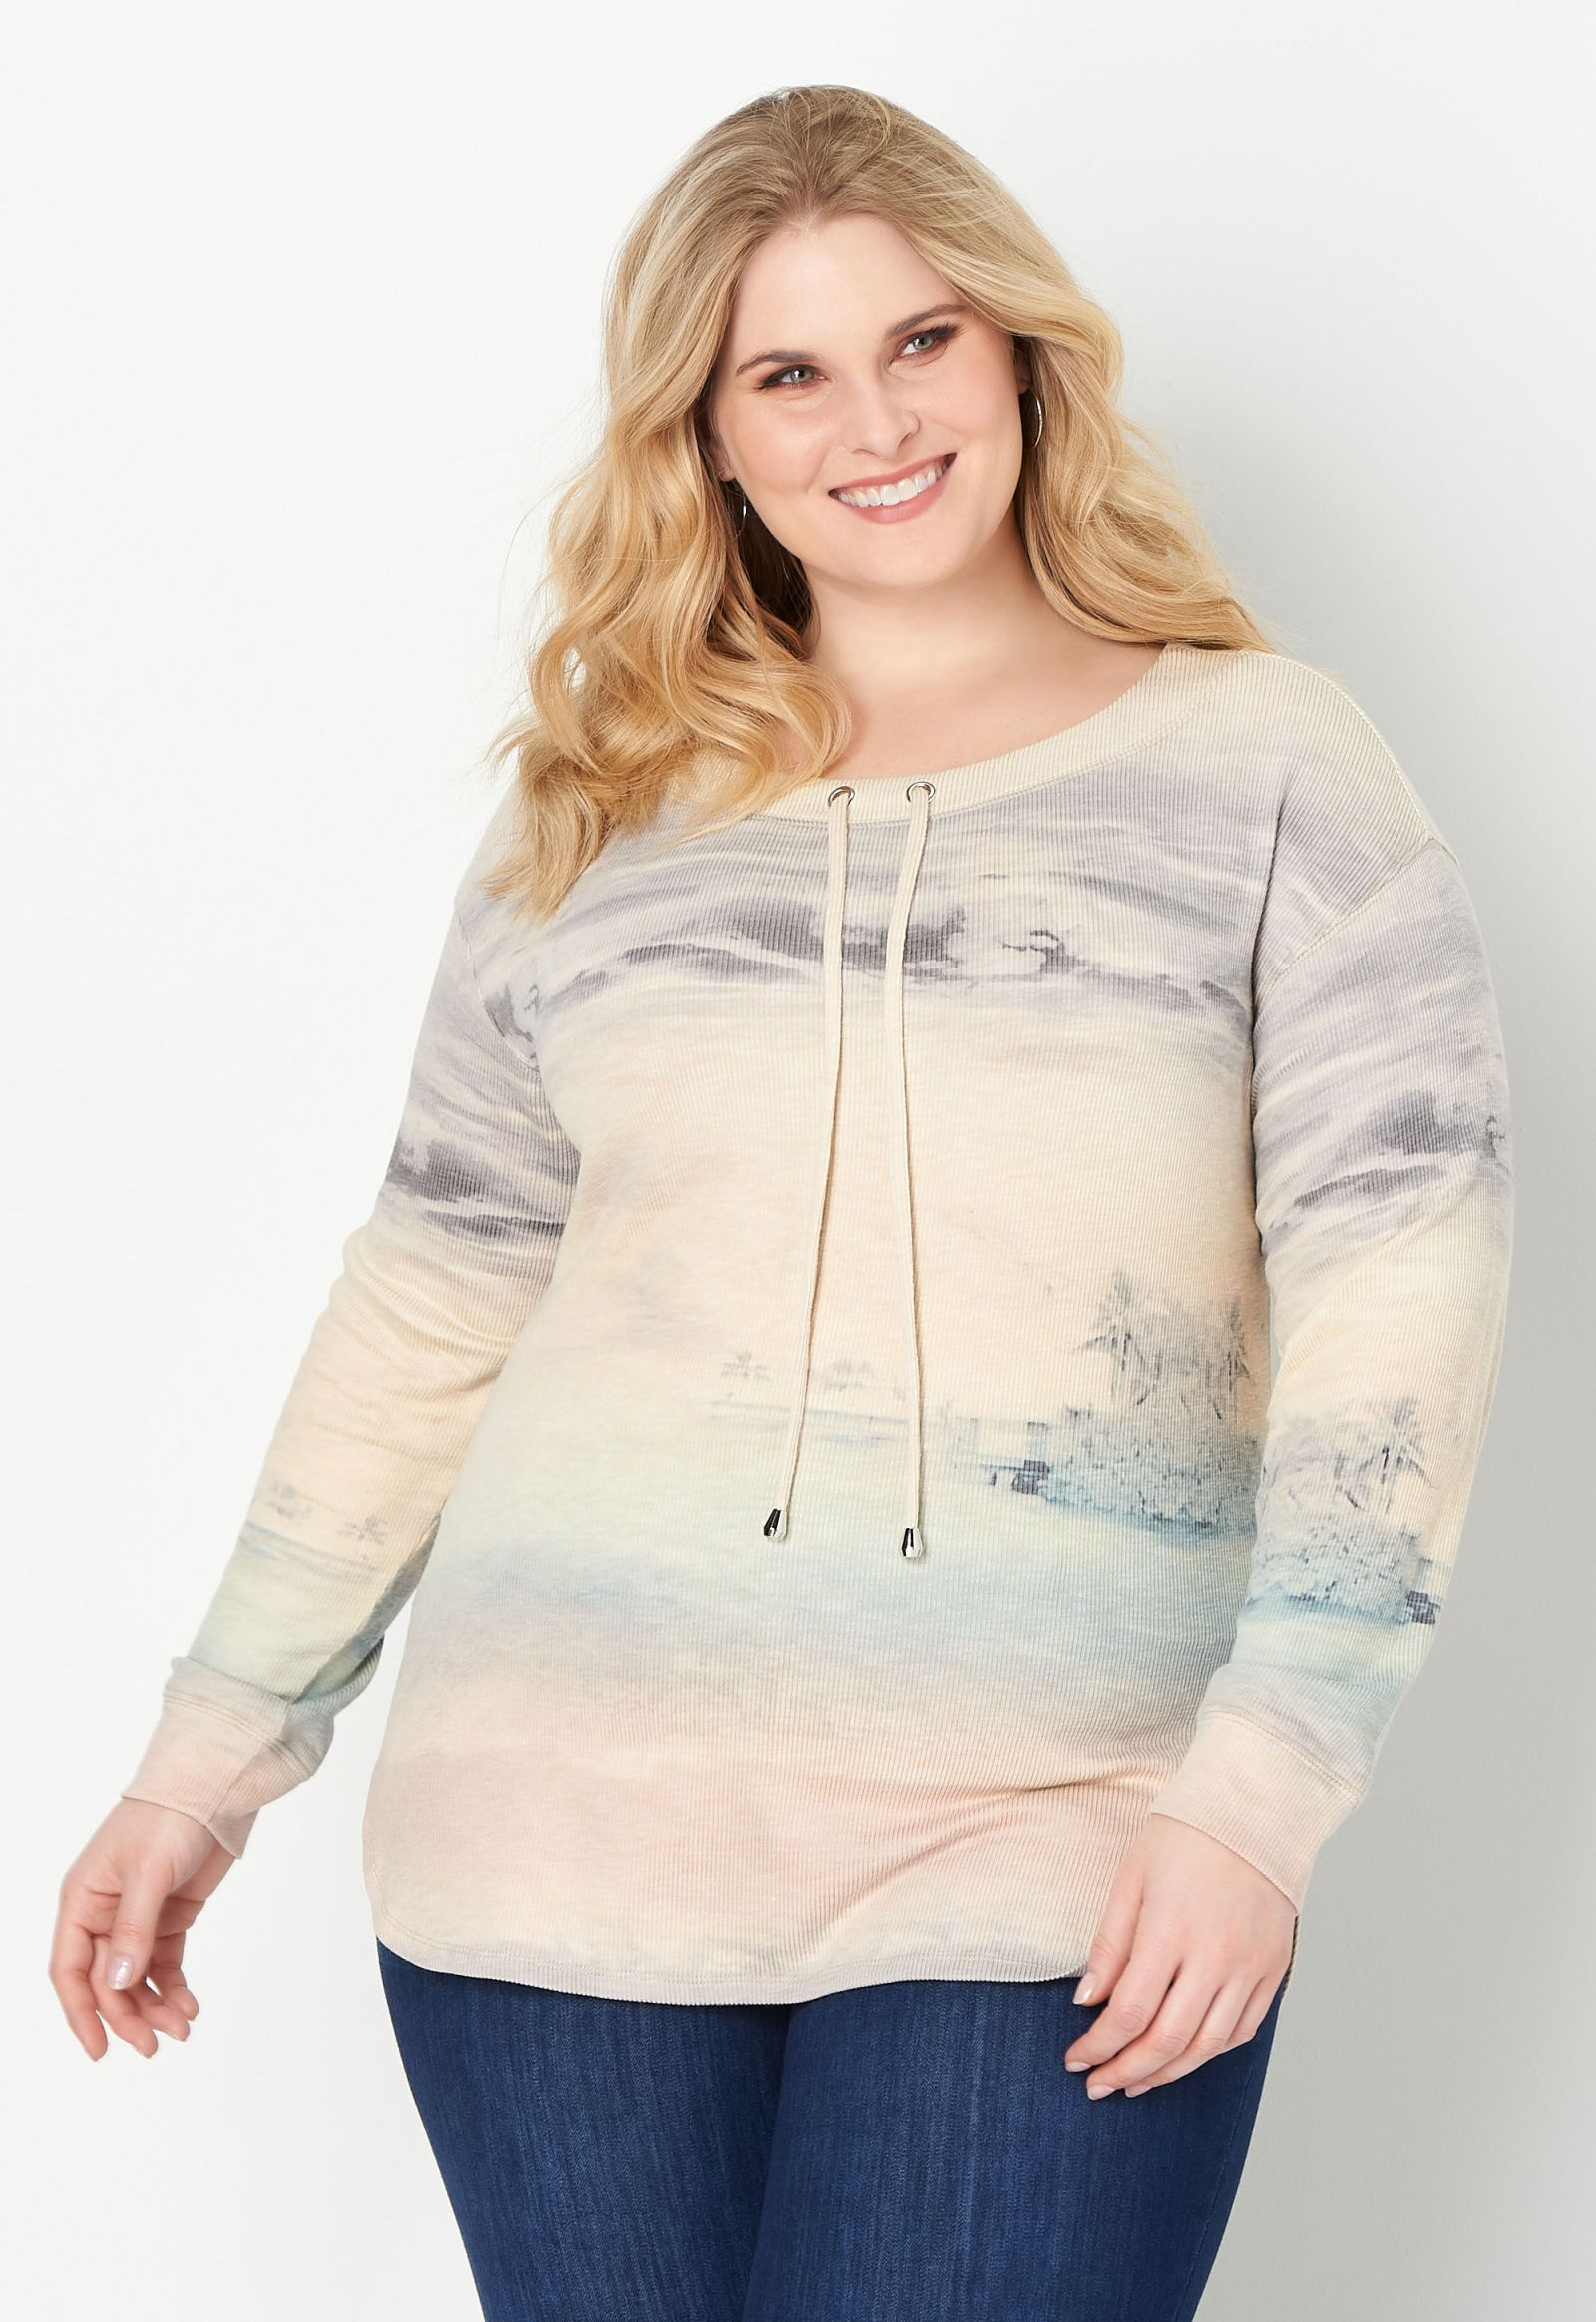 Ombre Sunset Plus Size Knit Top 2